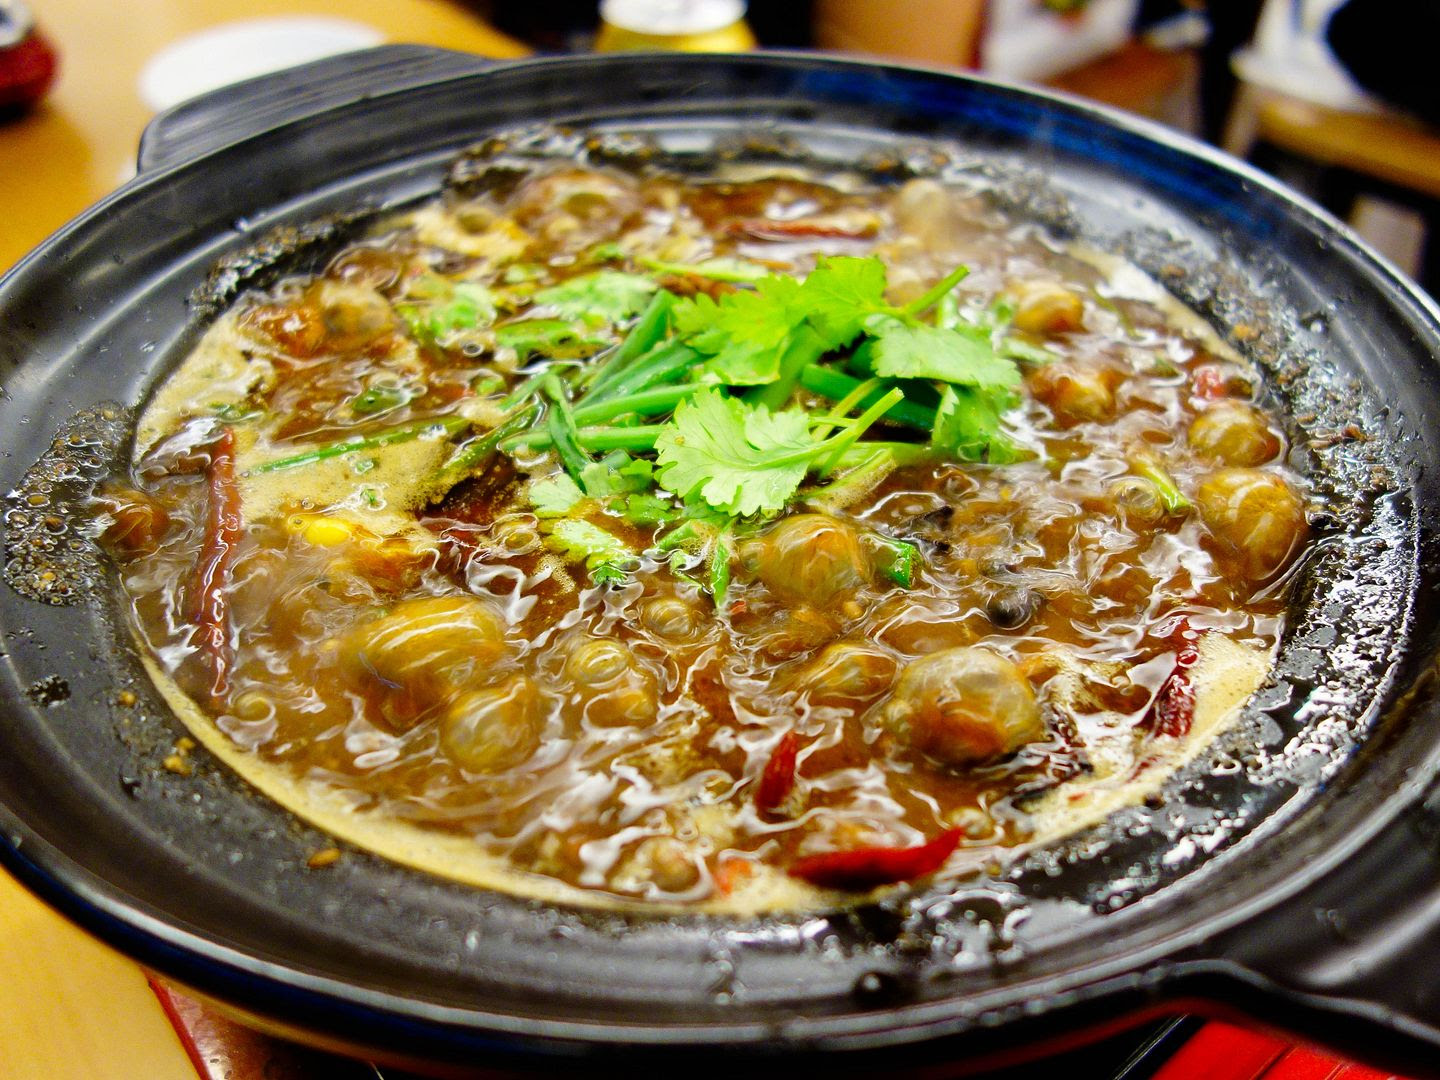 photo chickenhotpot.jpg